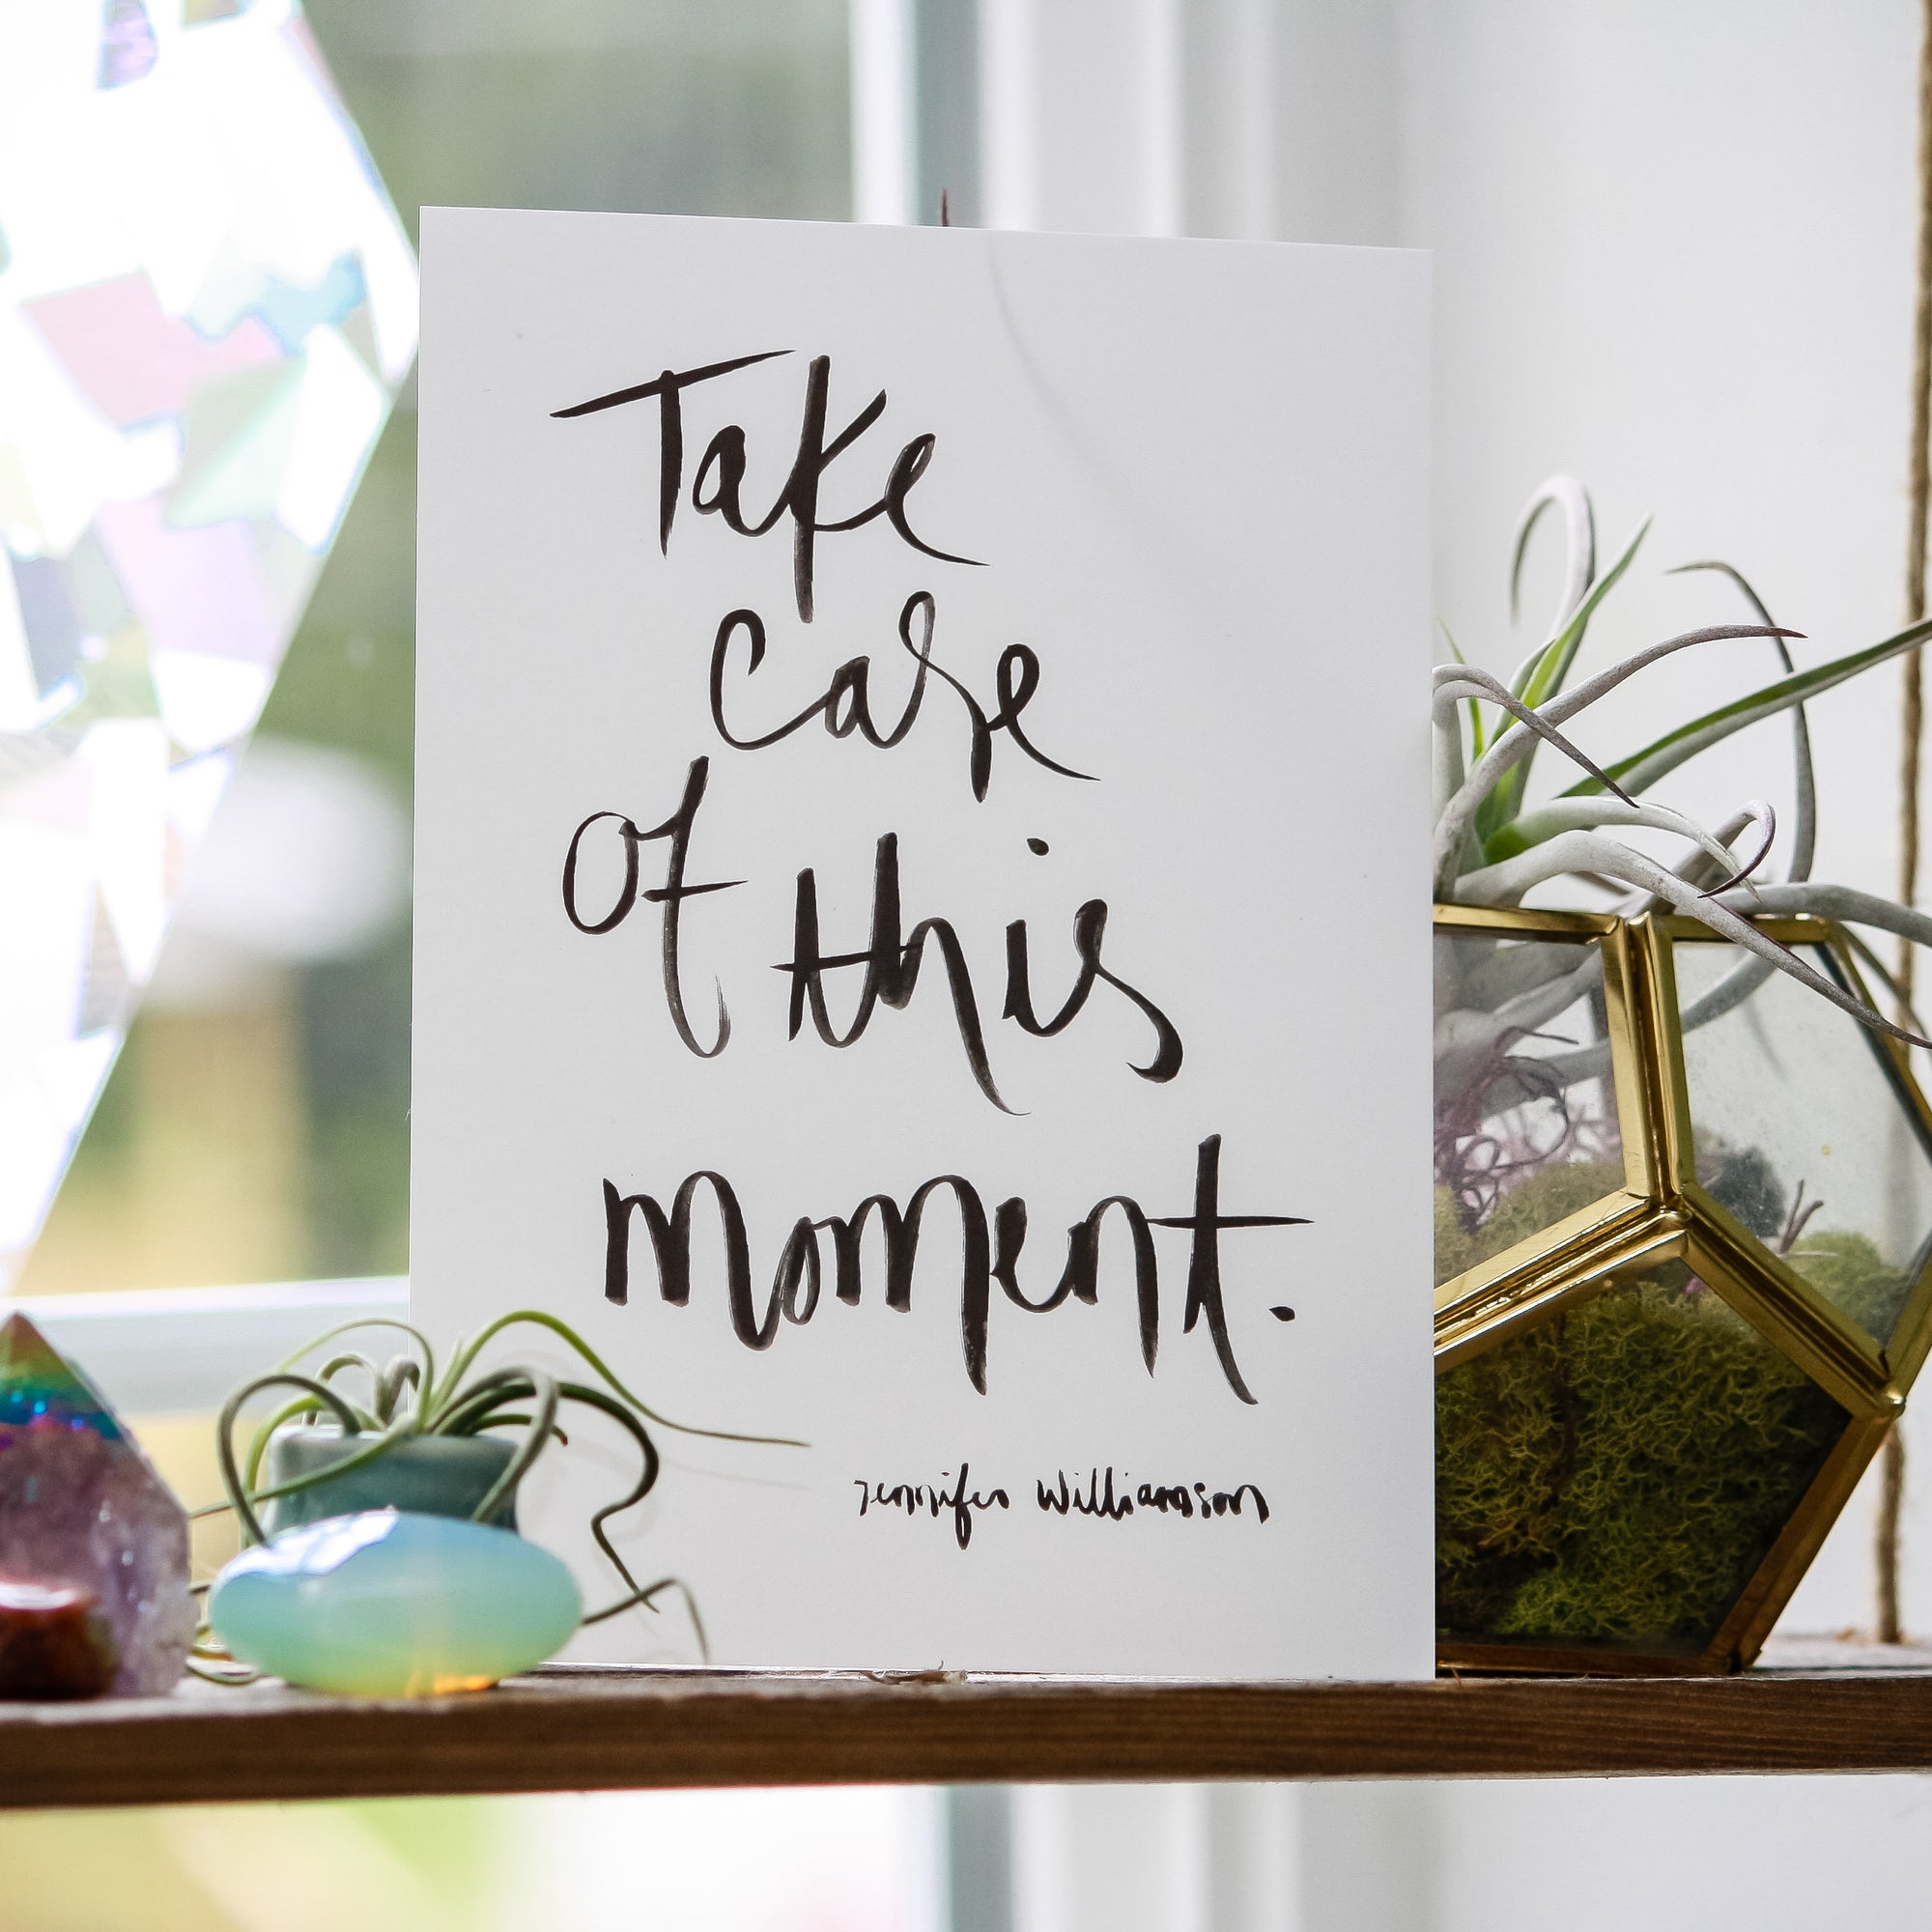 Take Care Of This Moment Handwritten Word Art Print by Jennifer Williamson of Healing Brave